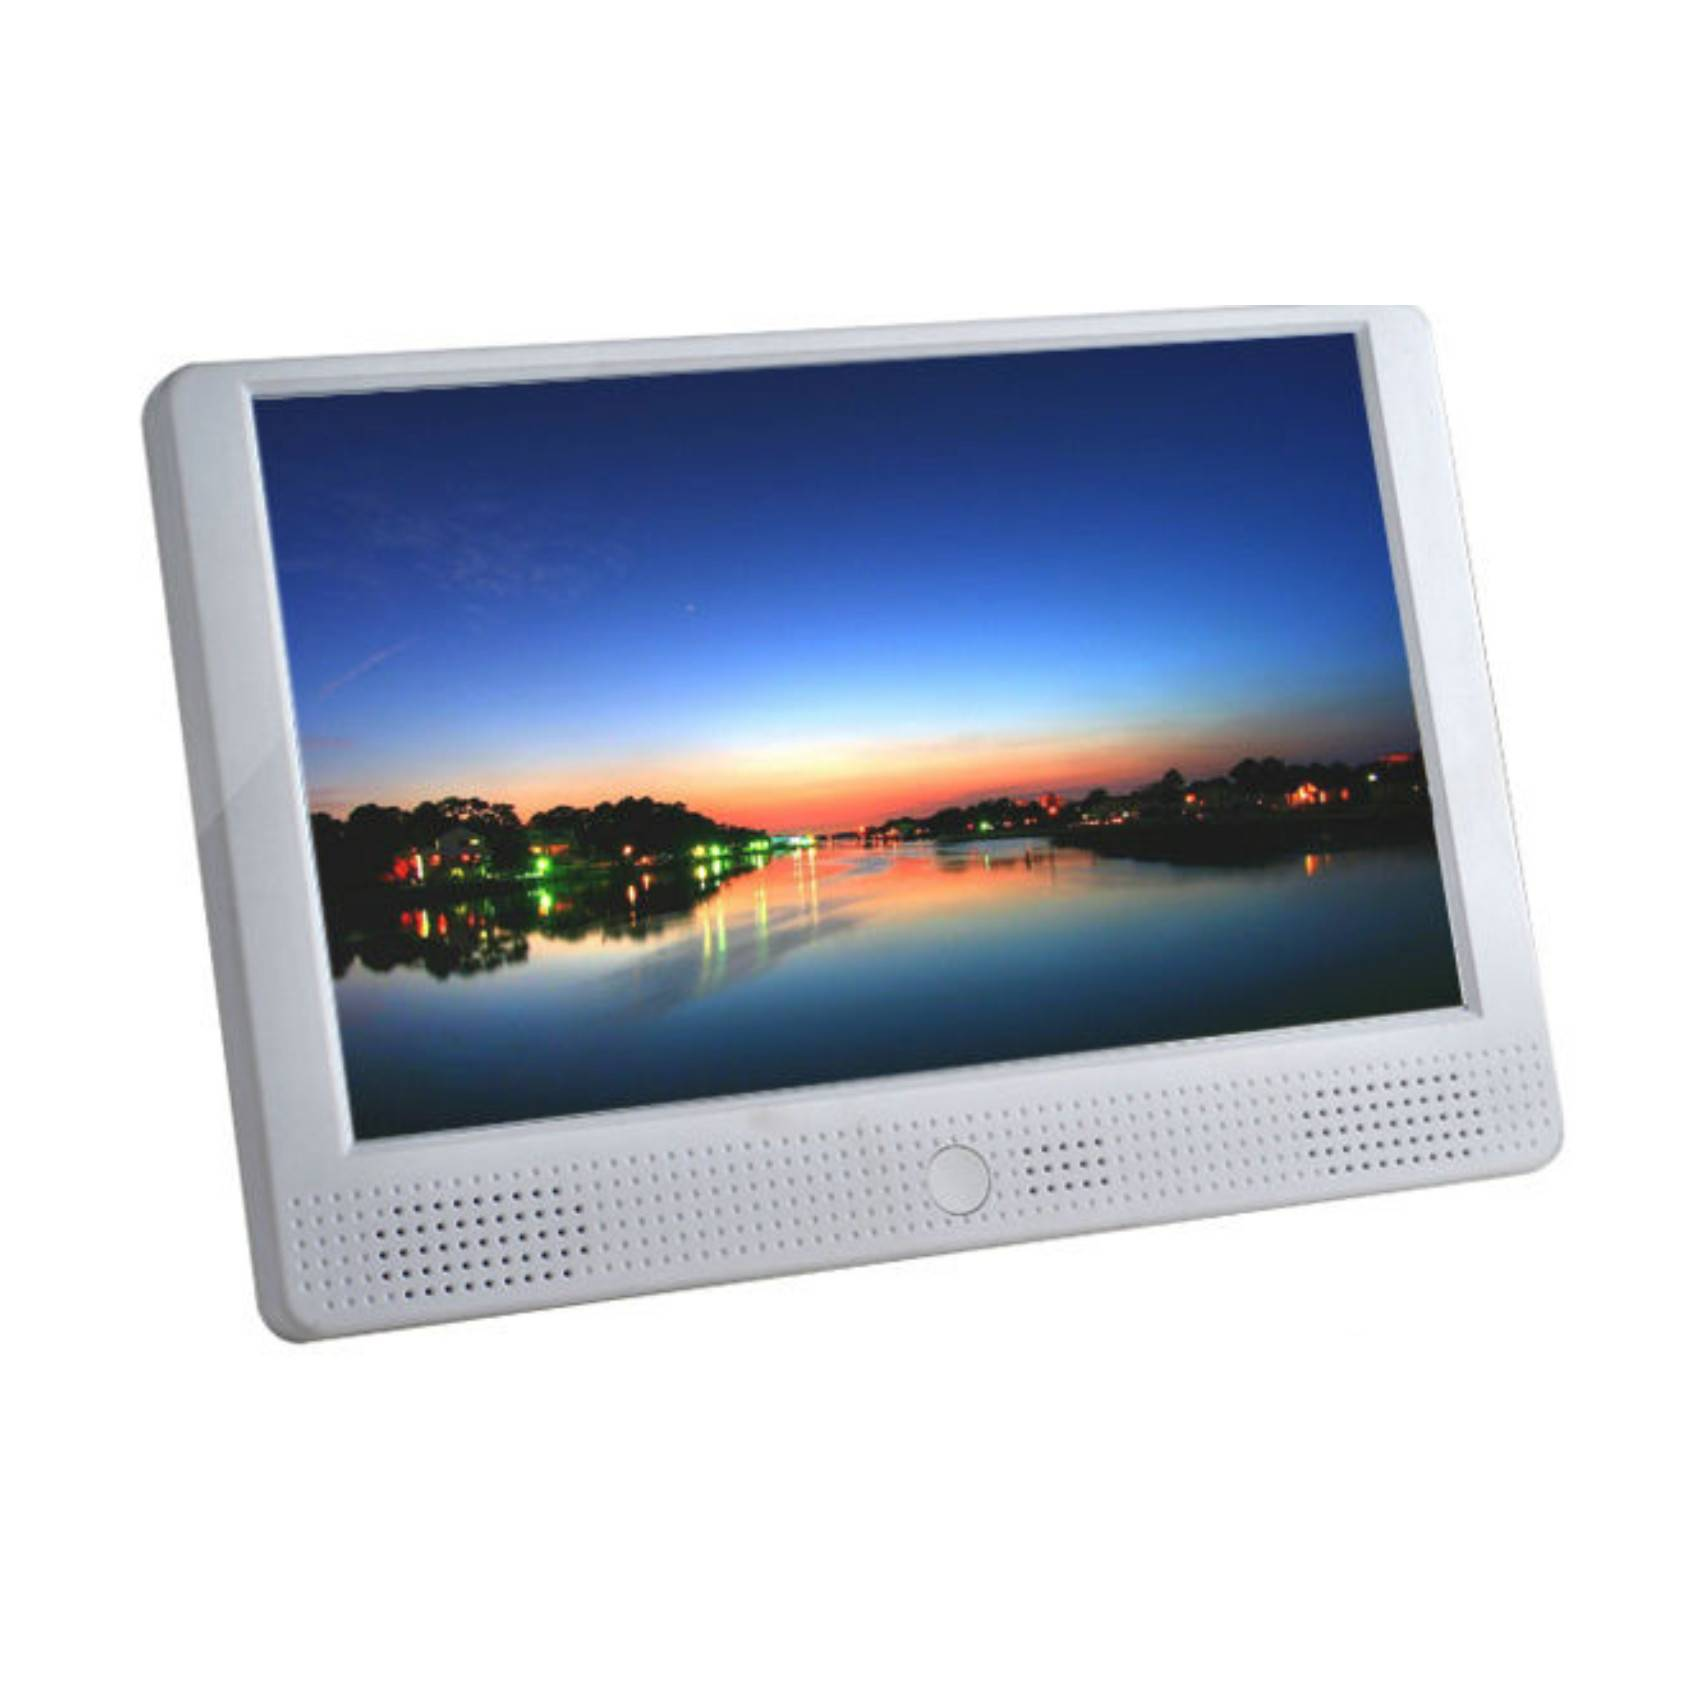 10 inch lcd digital signage player  Hot Products Speedy Delivery advertising products